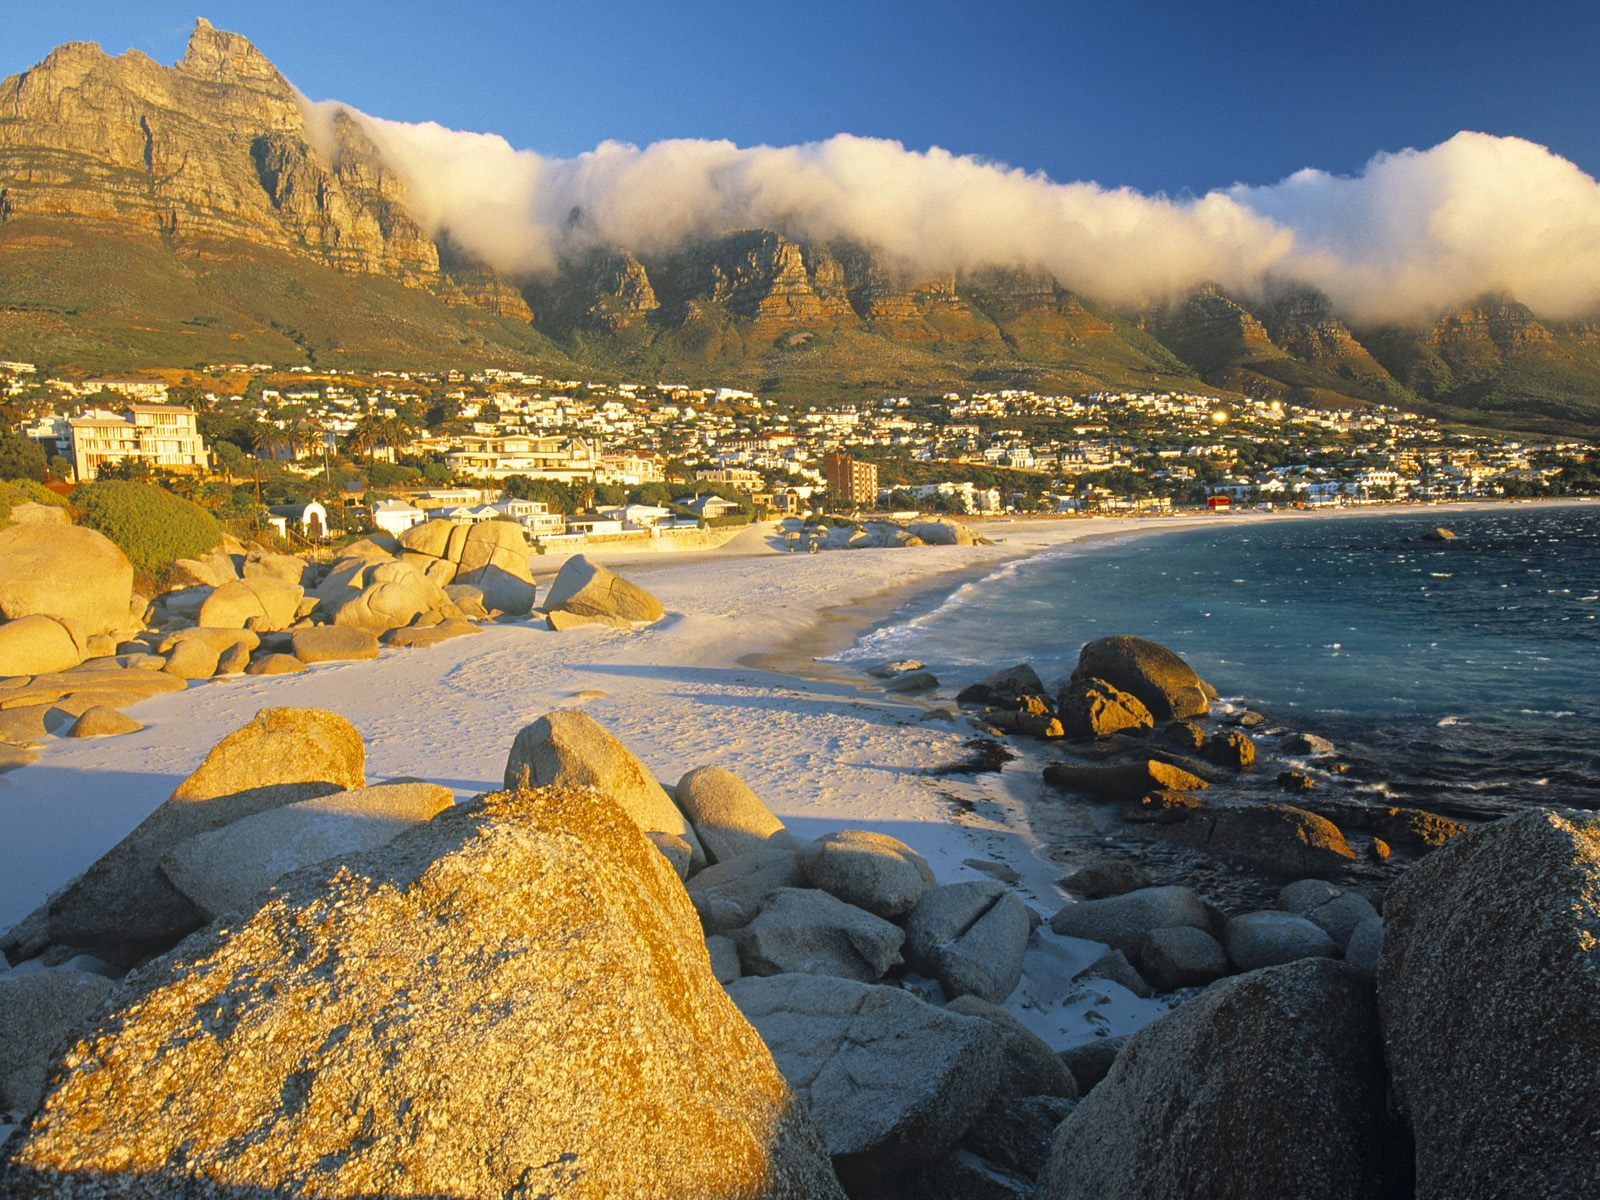 My Travels: Cape Town, South Africa